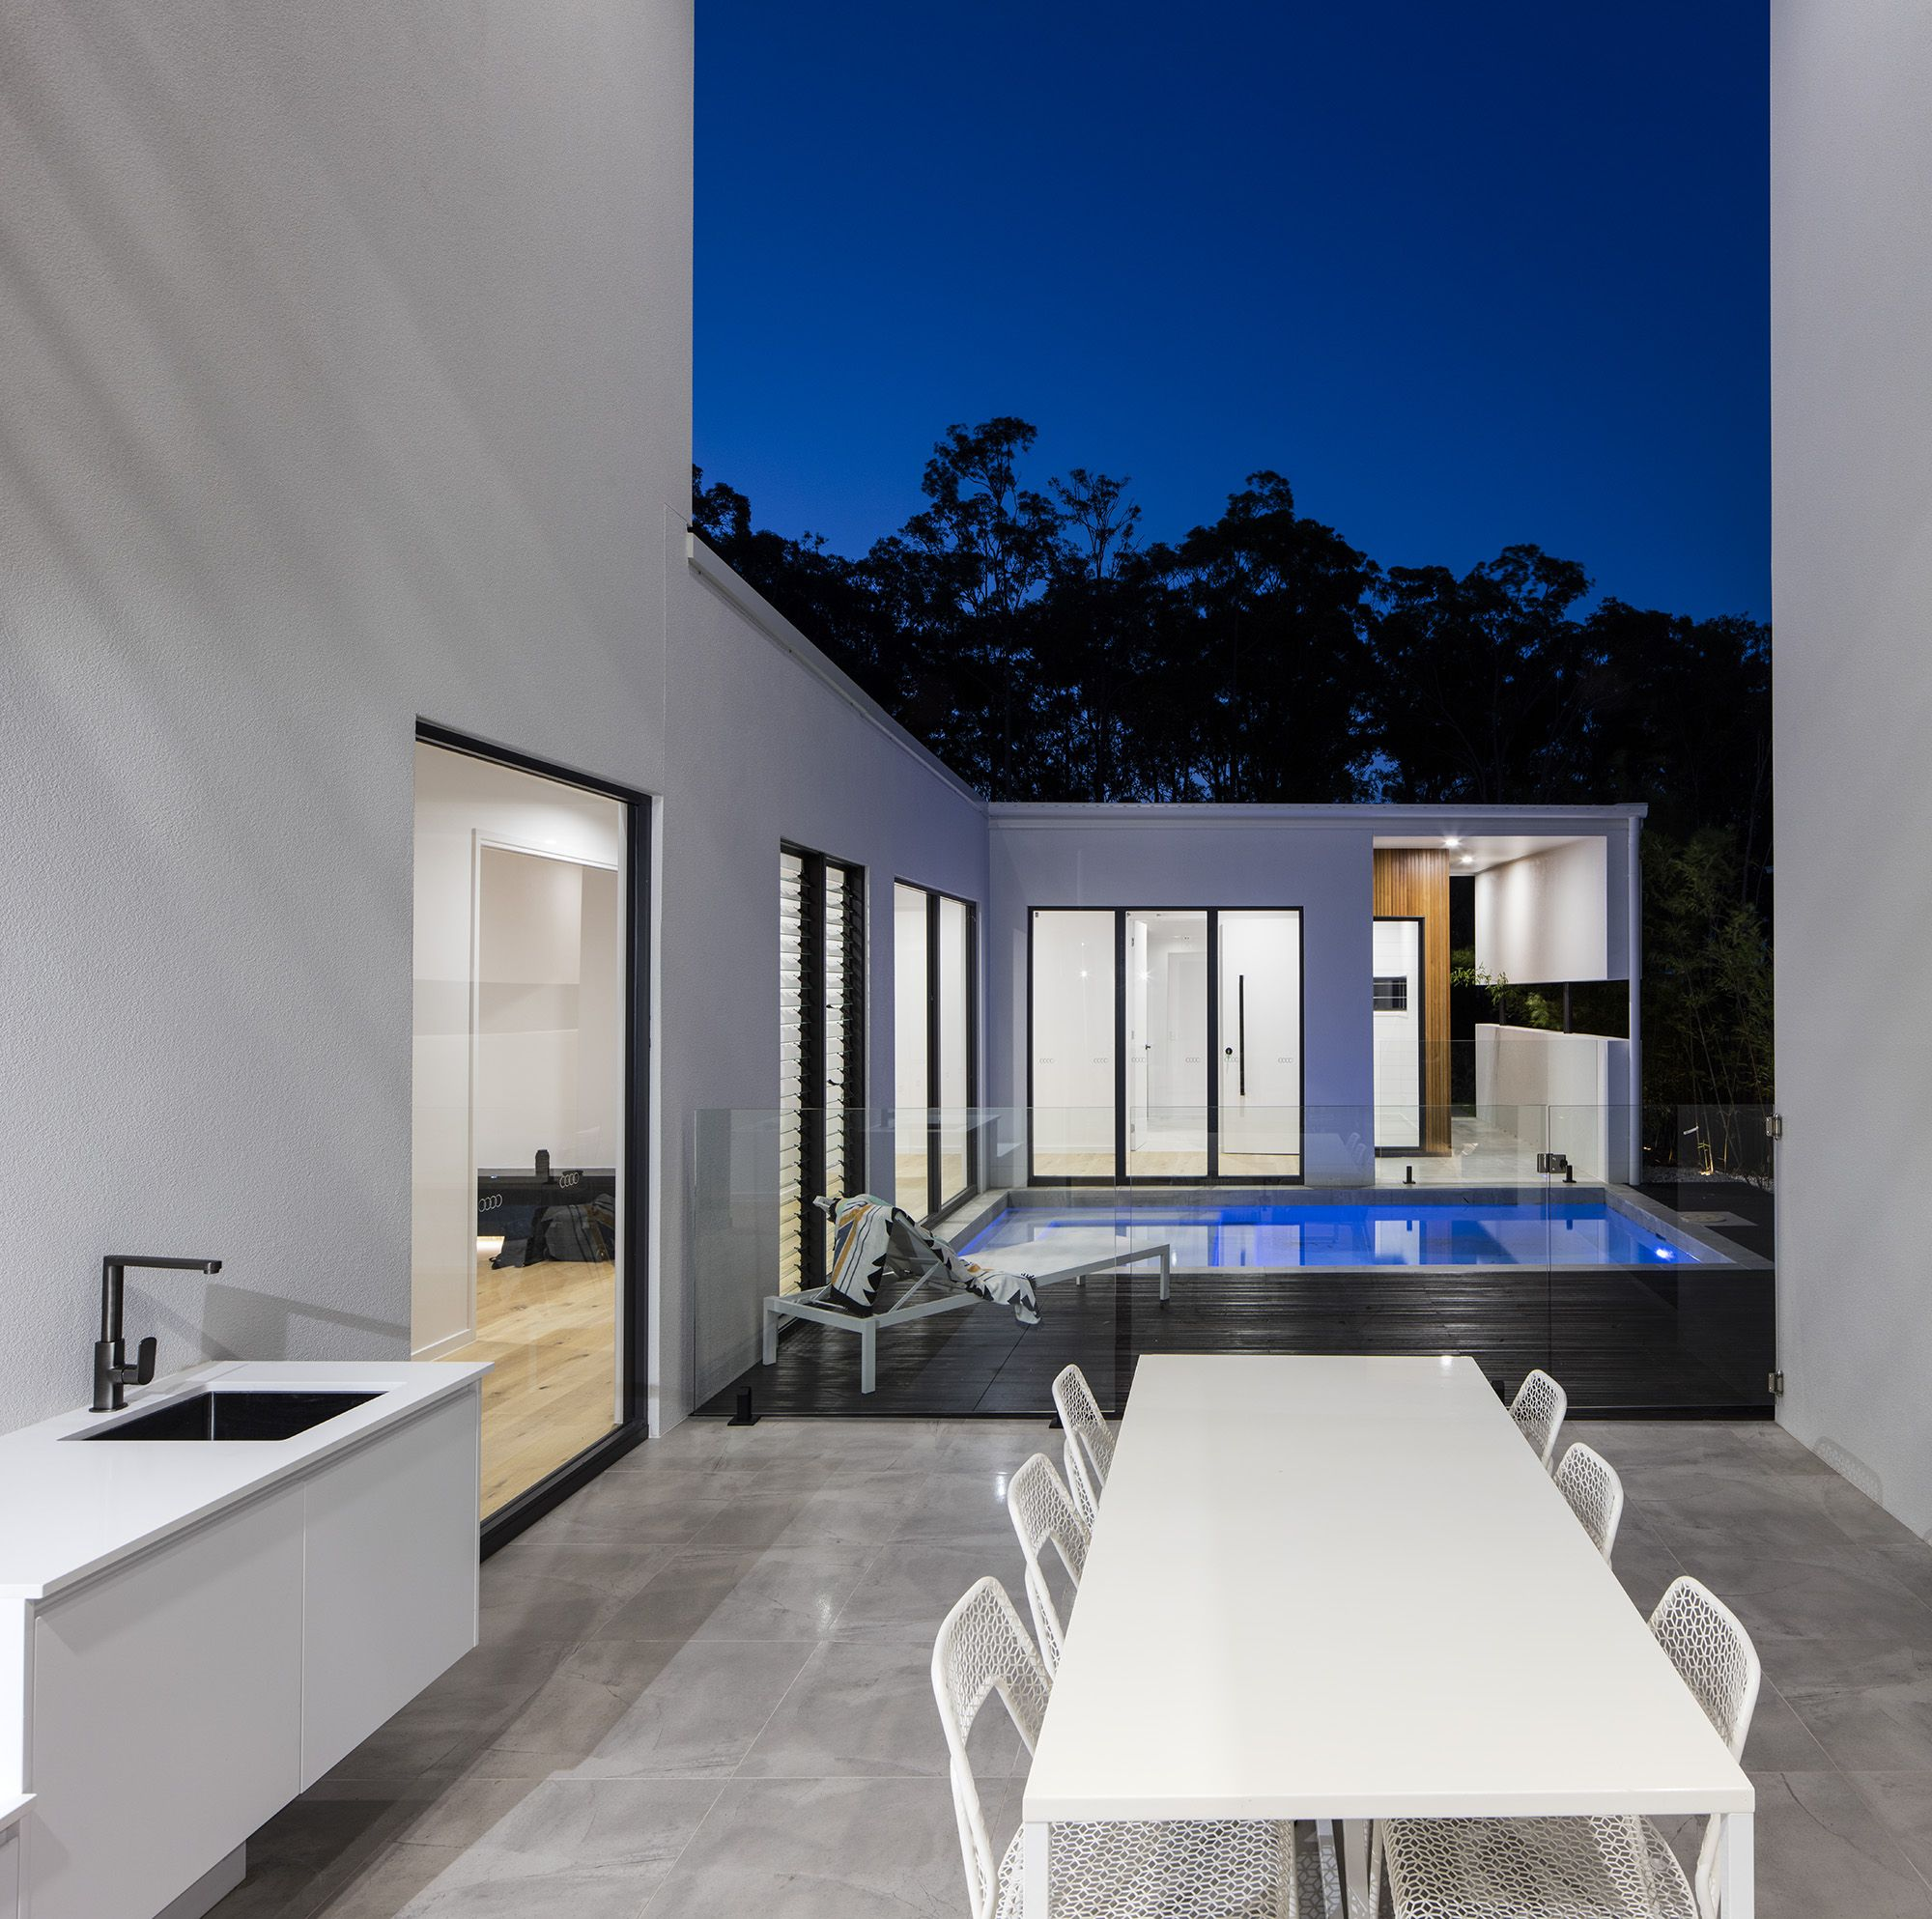 Featured by immackulate designer homes the peregian springs project located on sunshine coast qld australia designerhome architecture also sky as blue pool rh pinterest